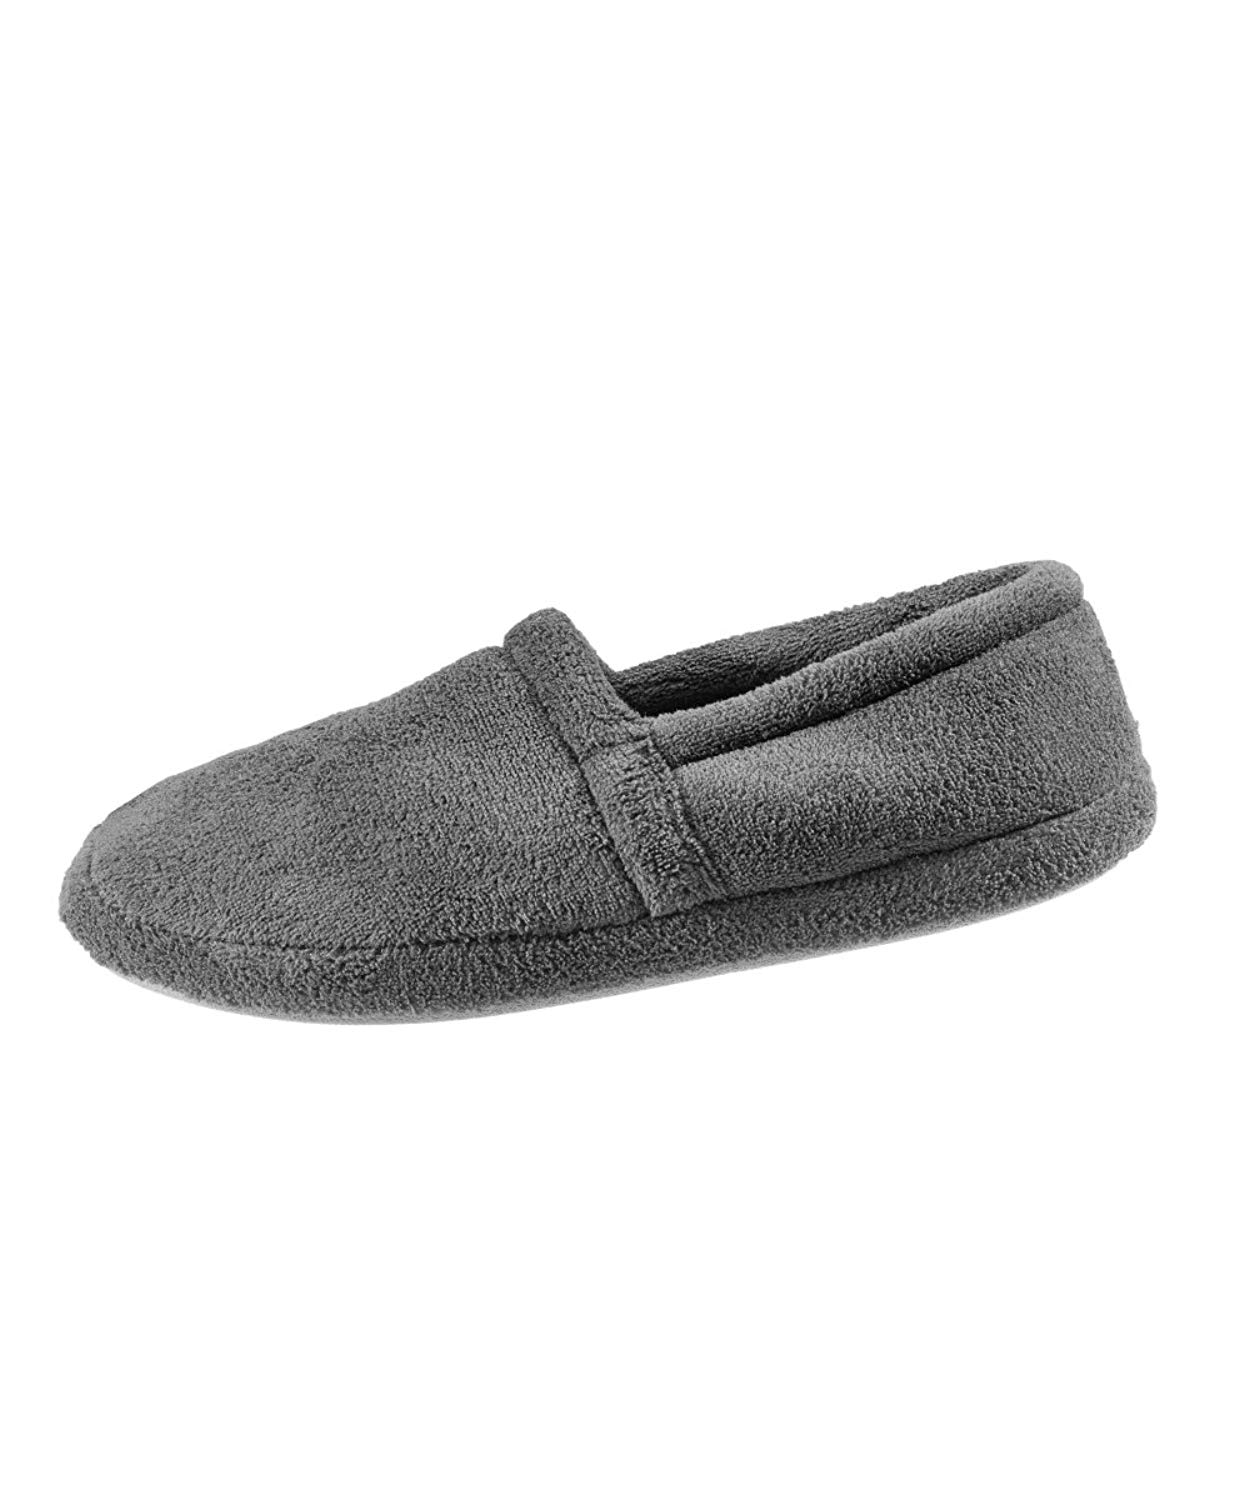 67ba6f826 Get Quotations · Most Comfortable Mens Slippers - Best Mens Slippers With  Memory Foam Comfort Slippers - Wide Mens